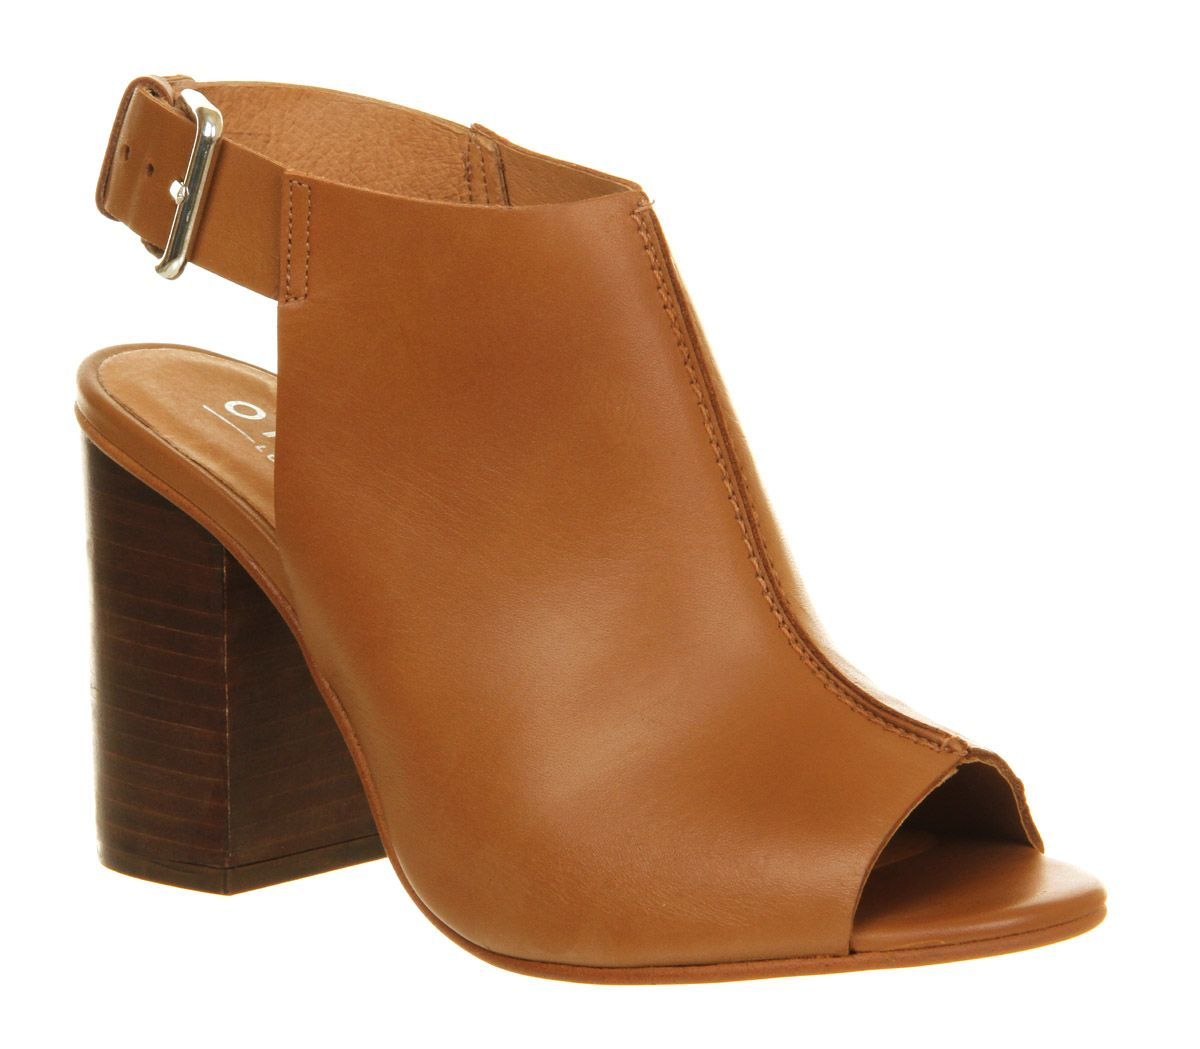 Office Garnet Cuff Block Heel Tan Leather - Mid Heels